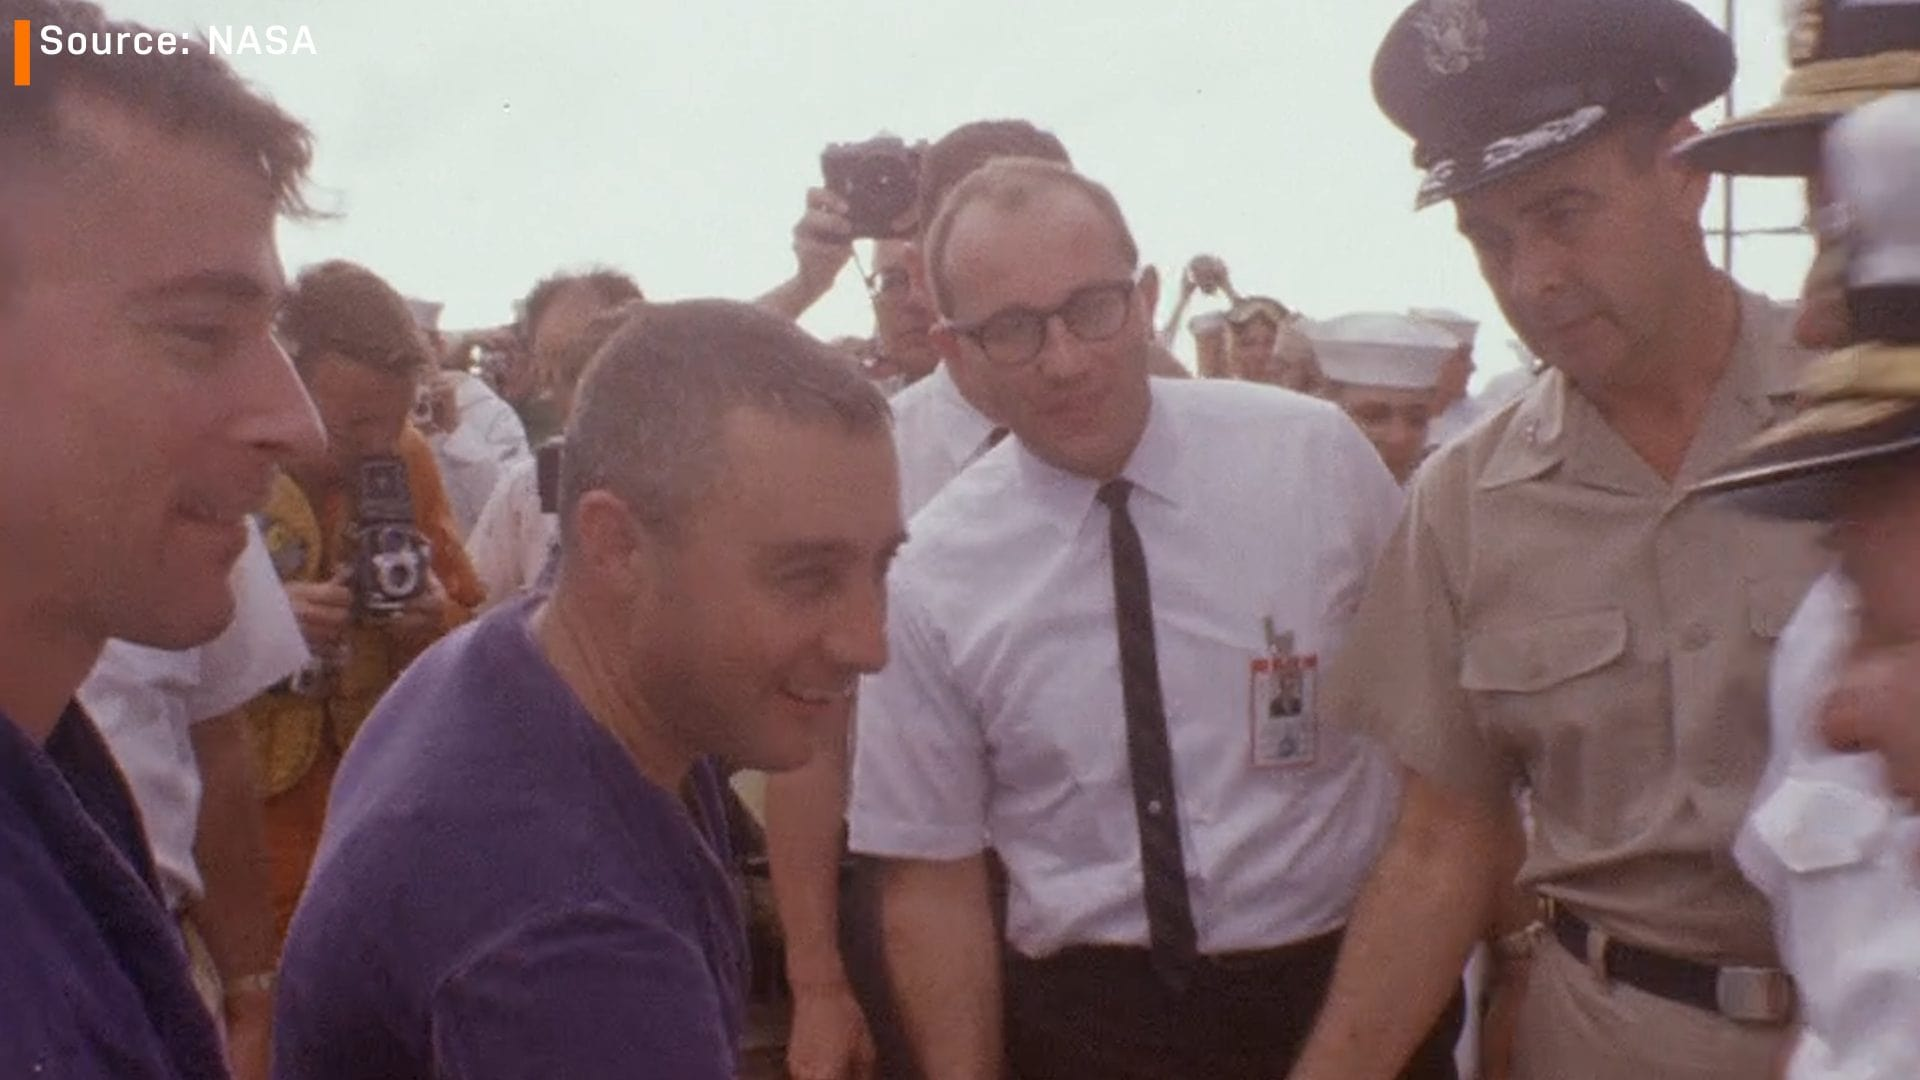 John Young and Gus Grissom Gemini corned beef sandwich